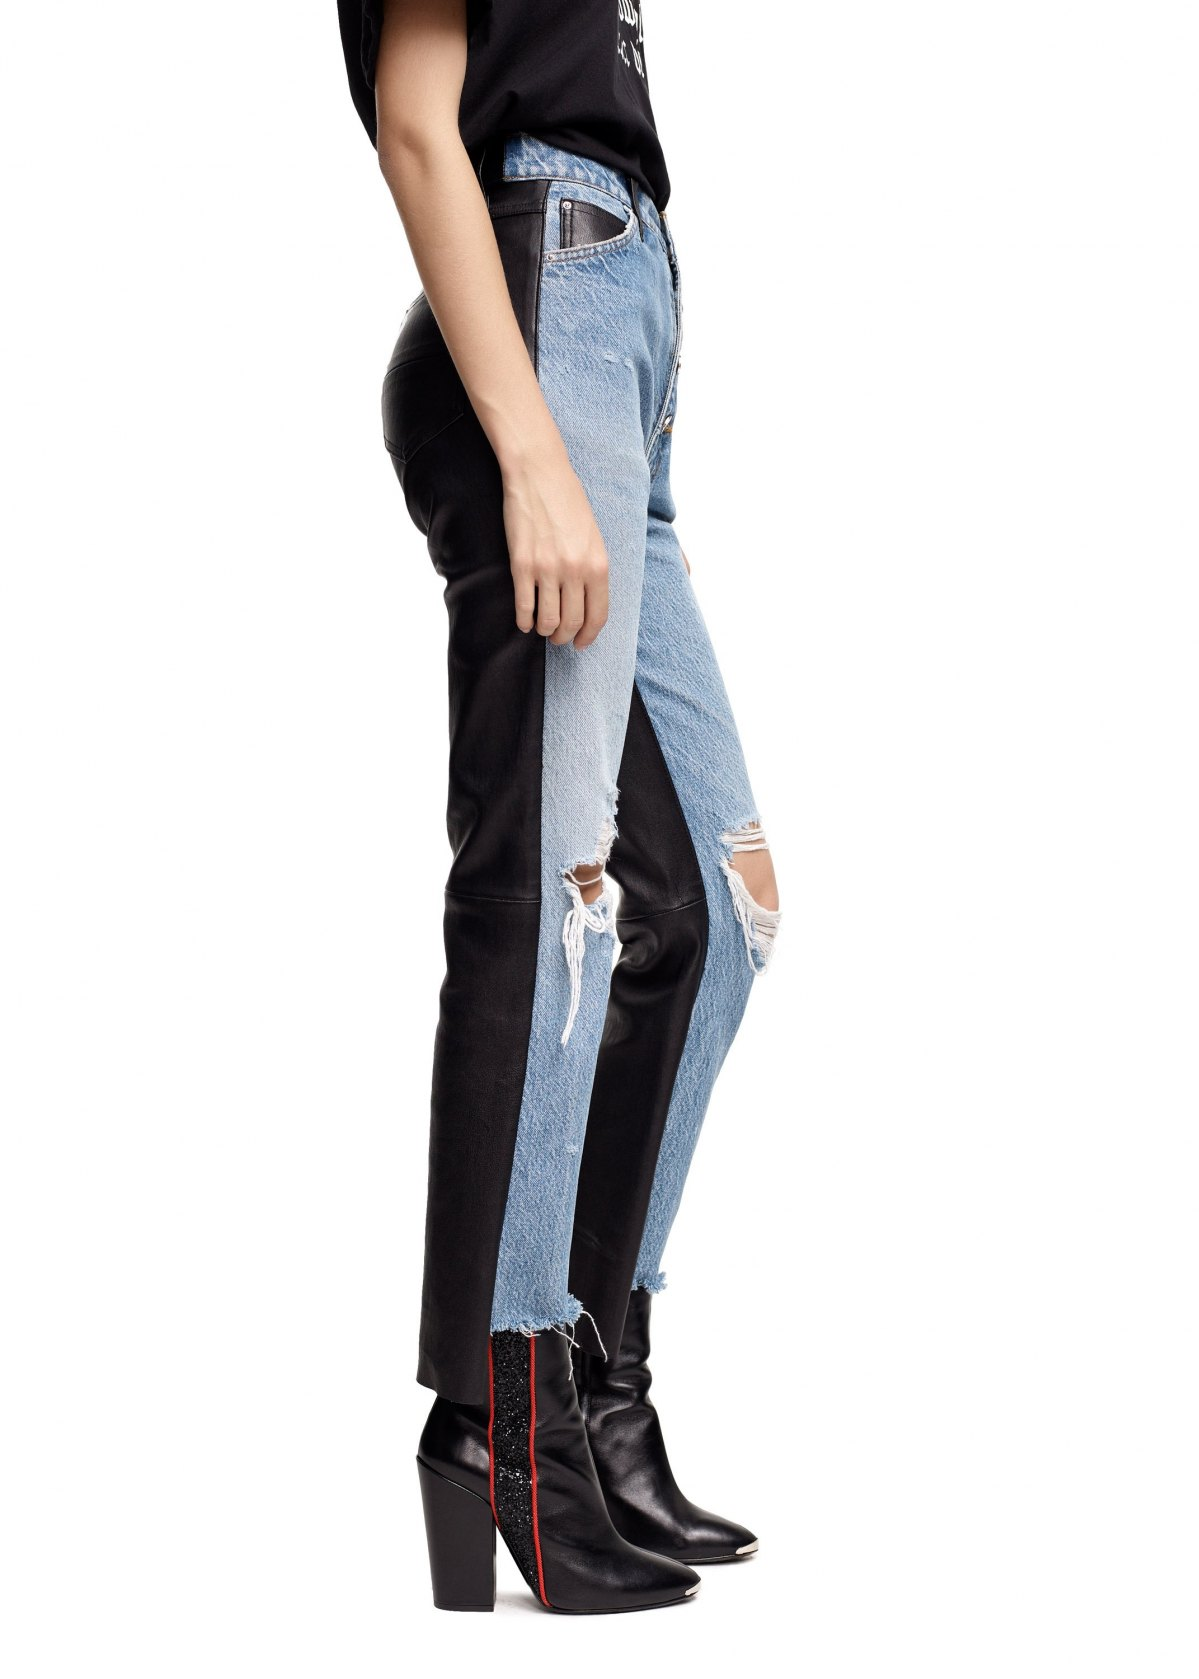 LEATHER DENIM CROP FLARE VINTAGE by Amiri, available on mikeamiri.com for $1750 Olivia Culpo Pants Exact Product